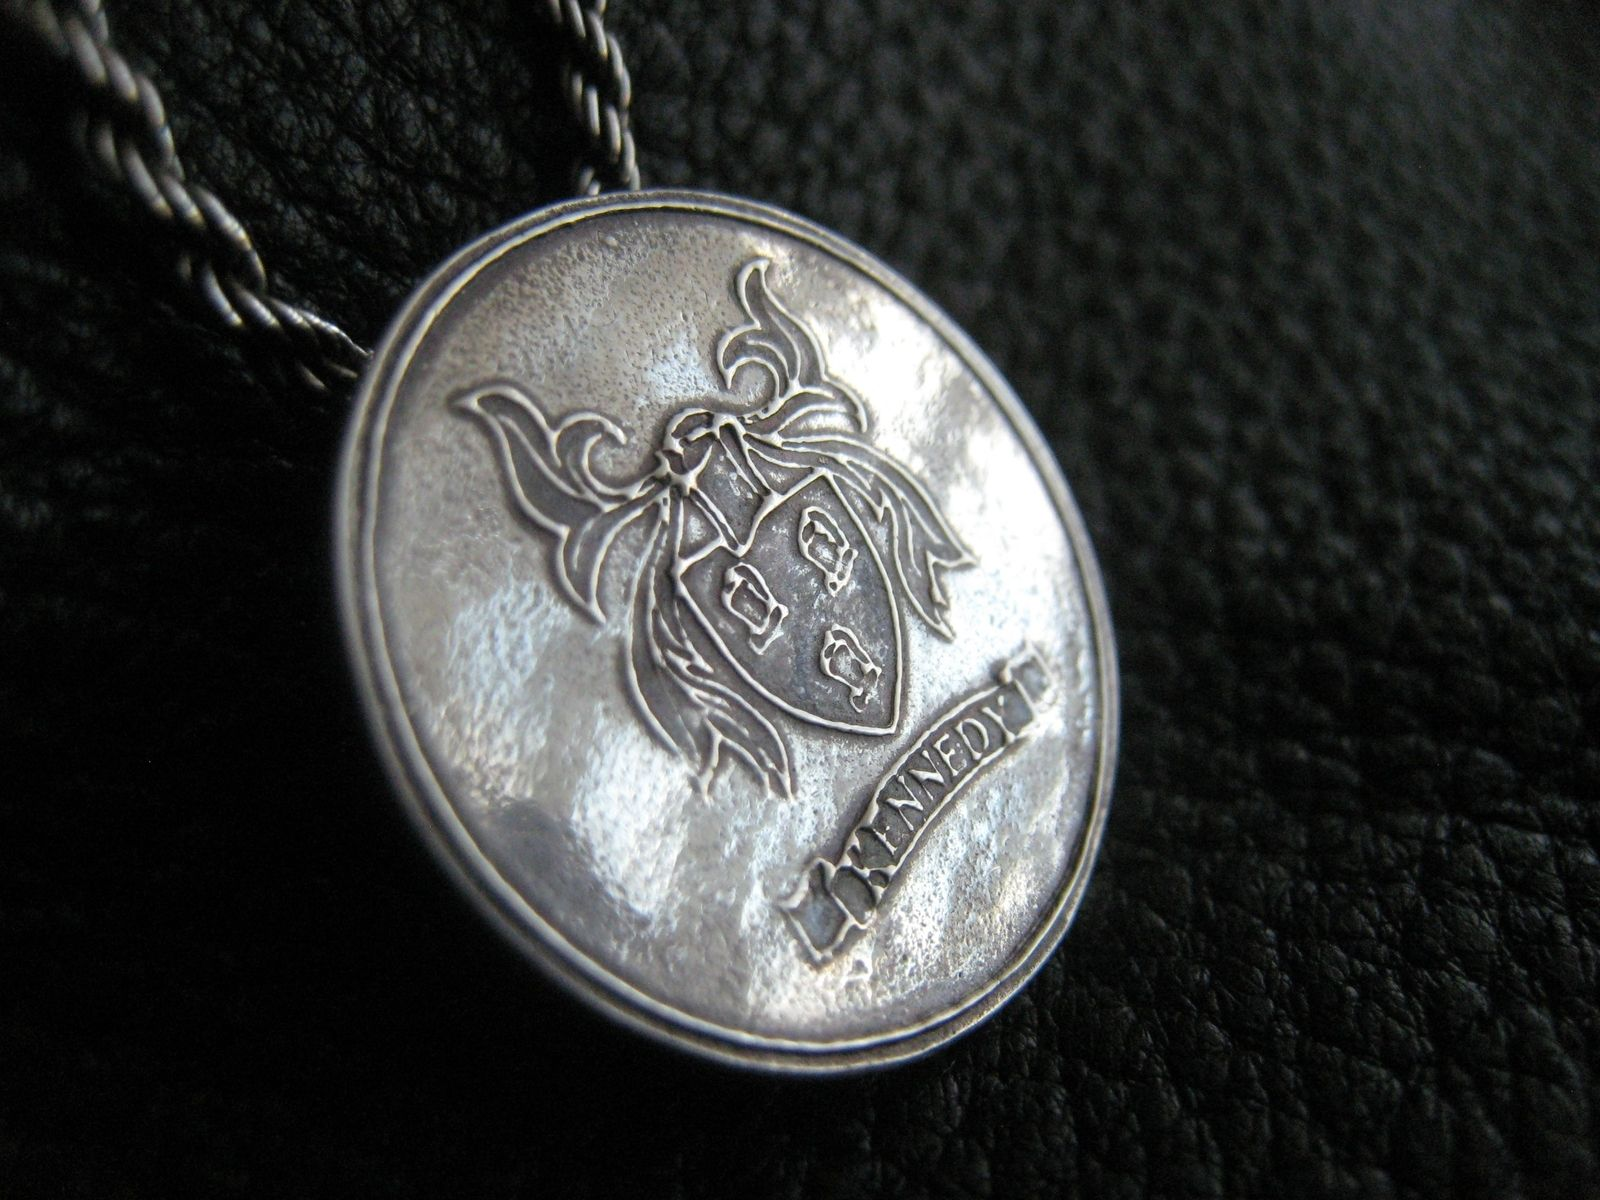 Hand Made Family Crest Coat Of Arms Heraldry Medallion